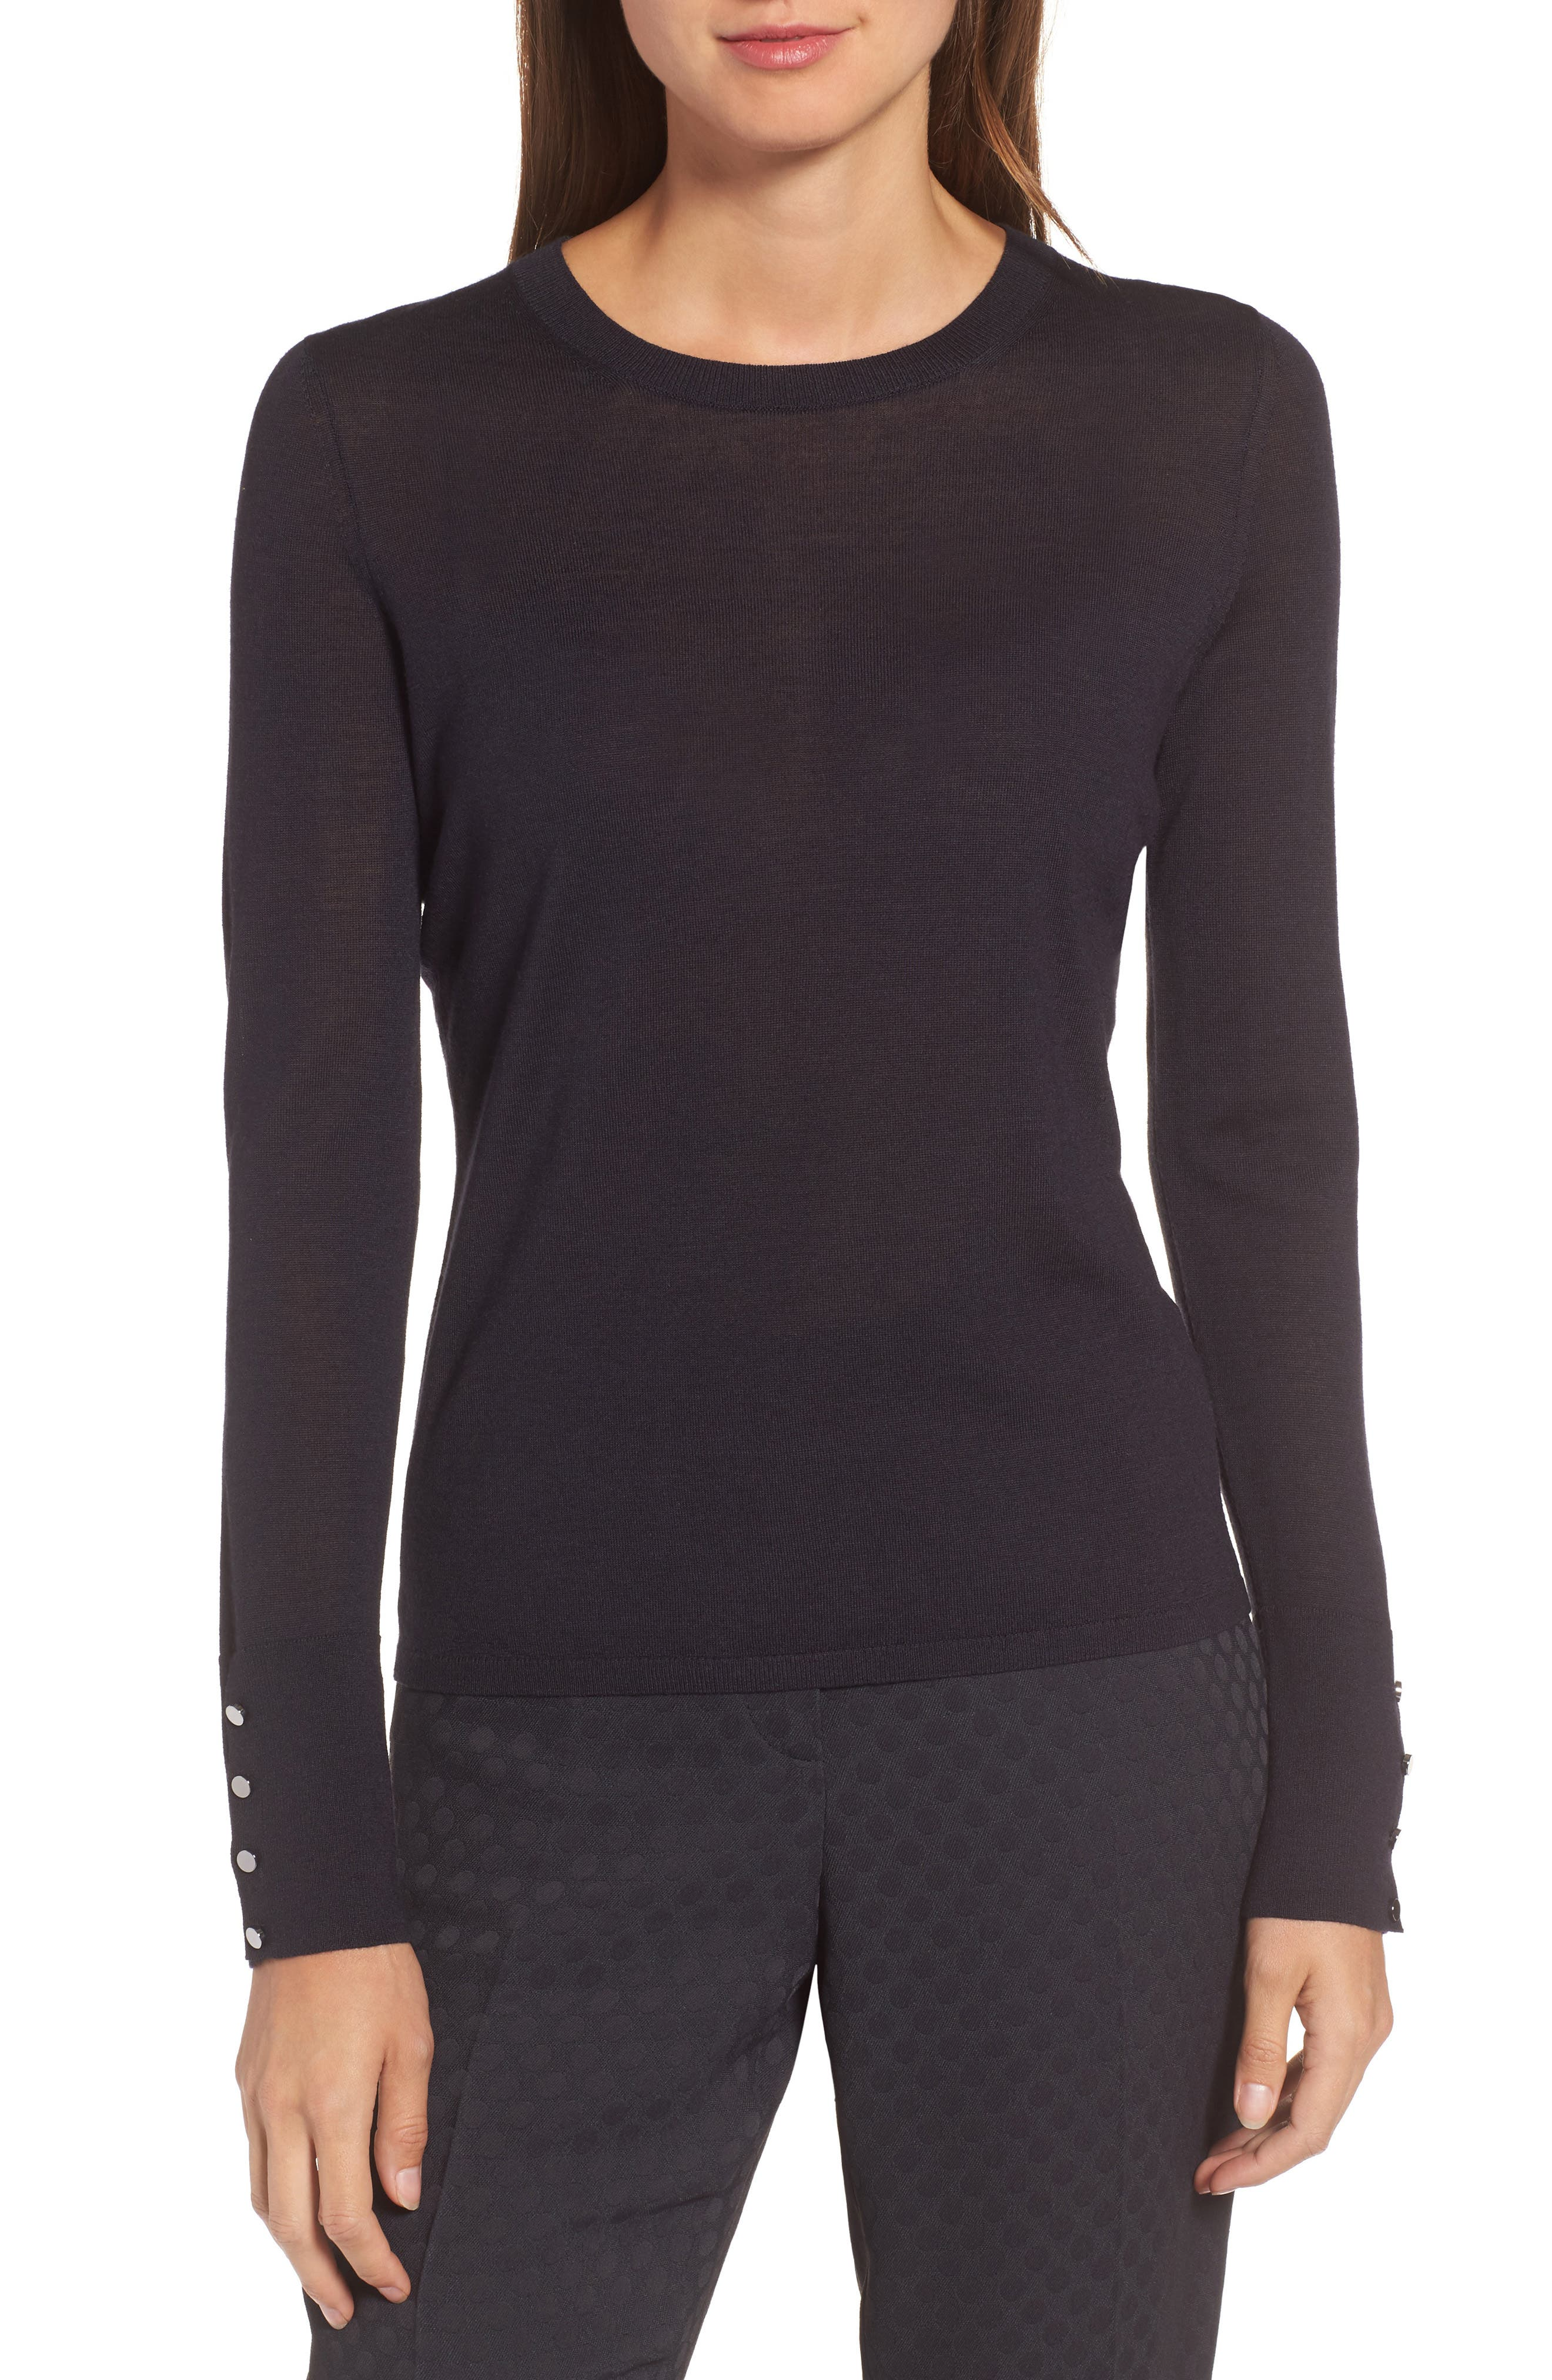 Main Image - BOSS Frankie Cuff Detail Wool Sweater (Nordstrom Exclusive)